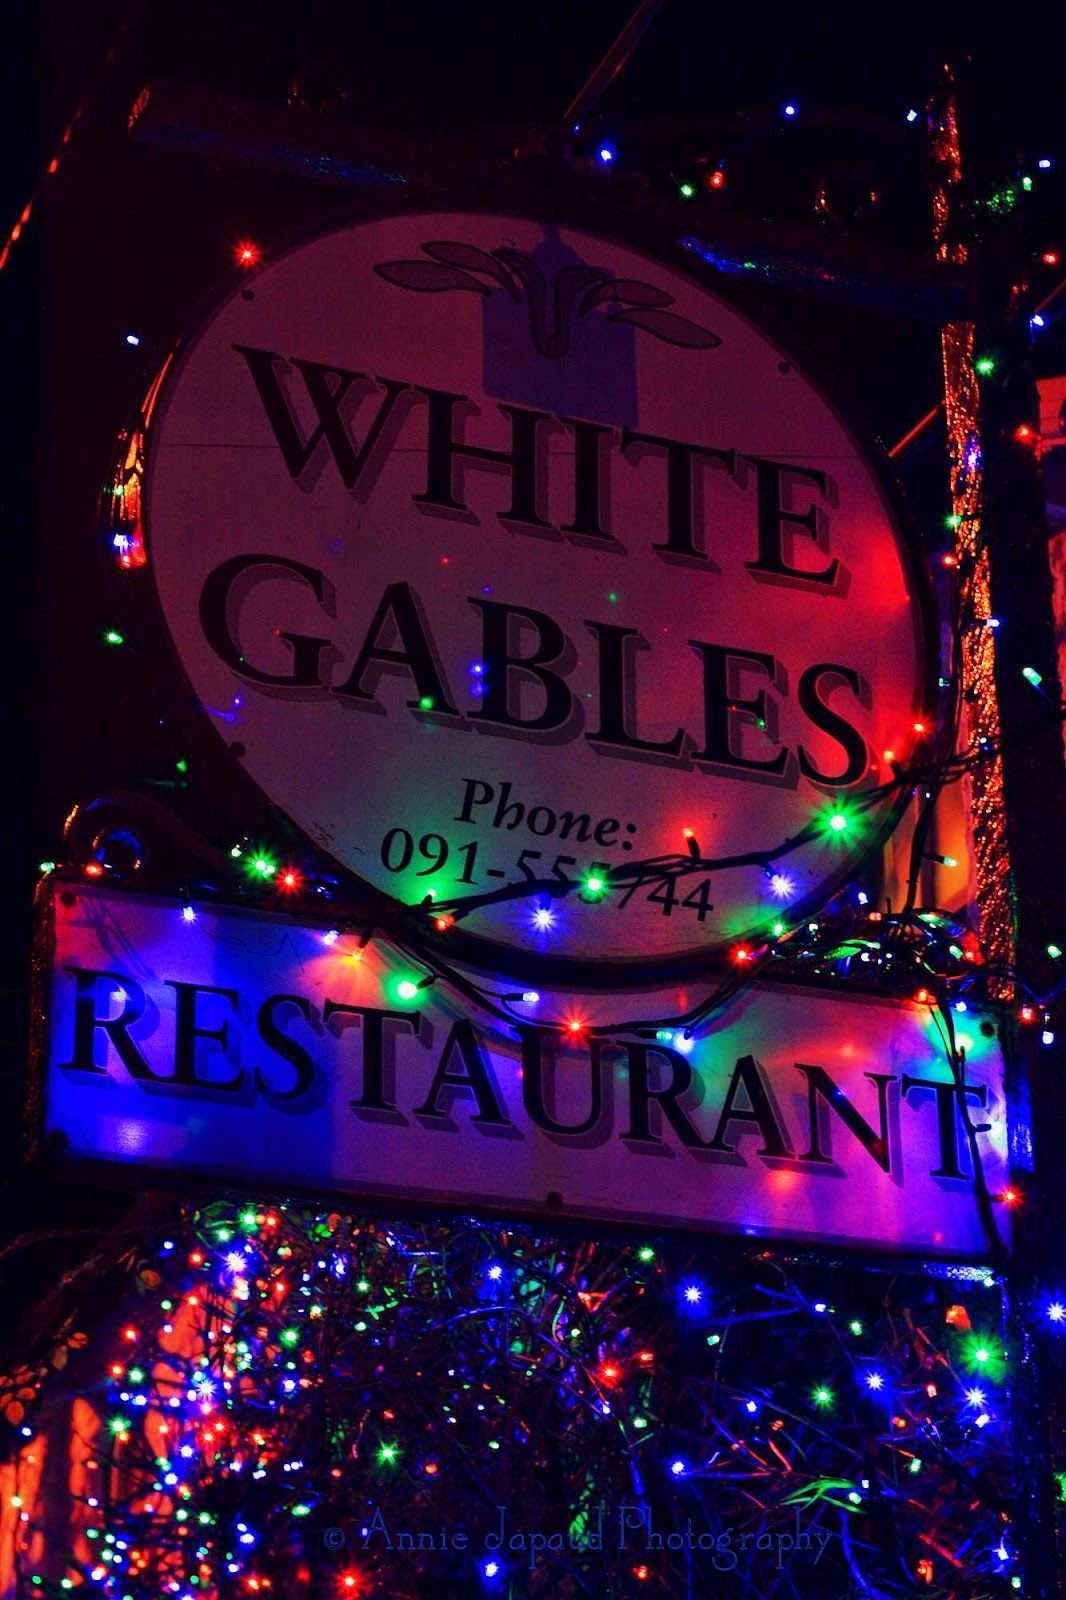 The White gables sign decorated with Christmas lights